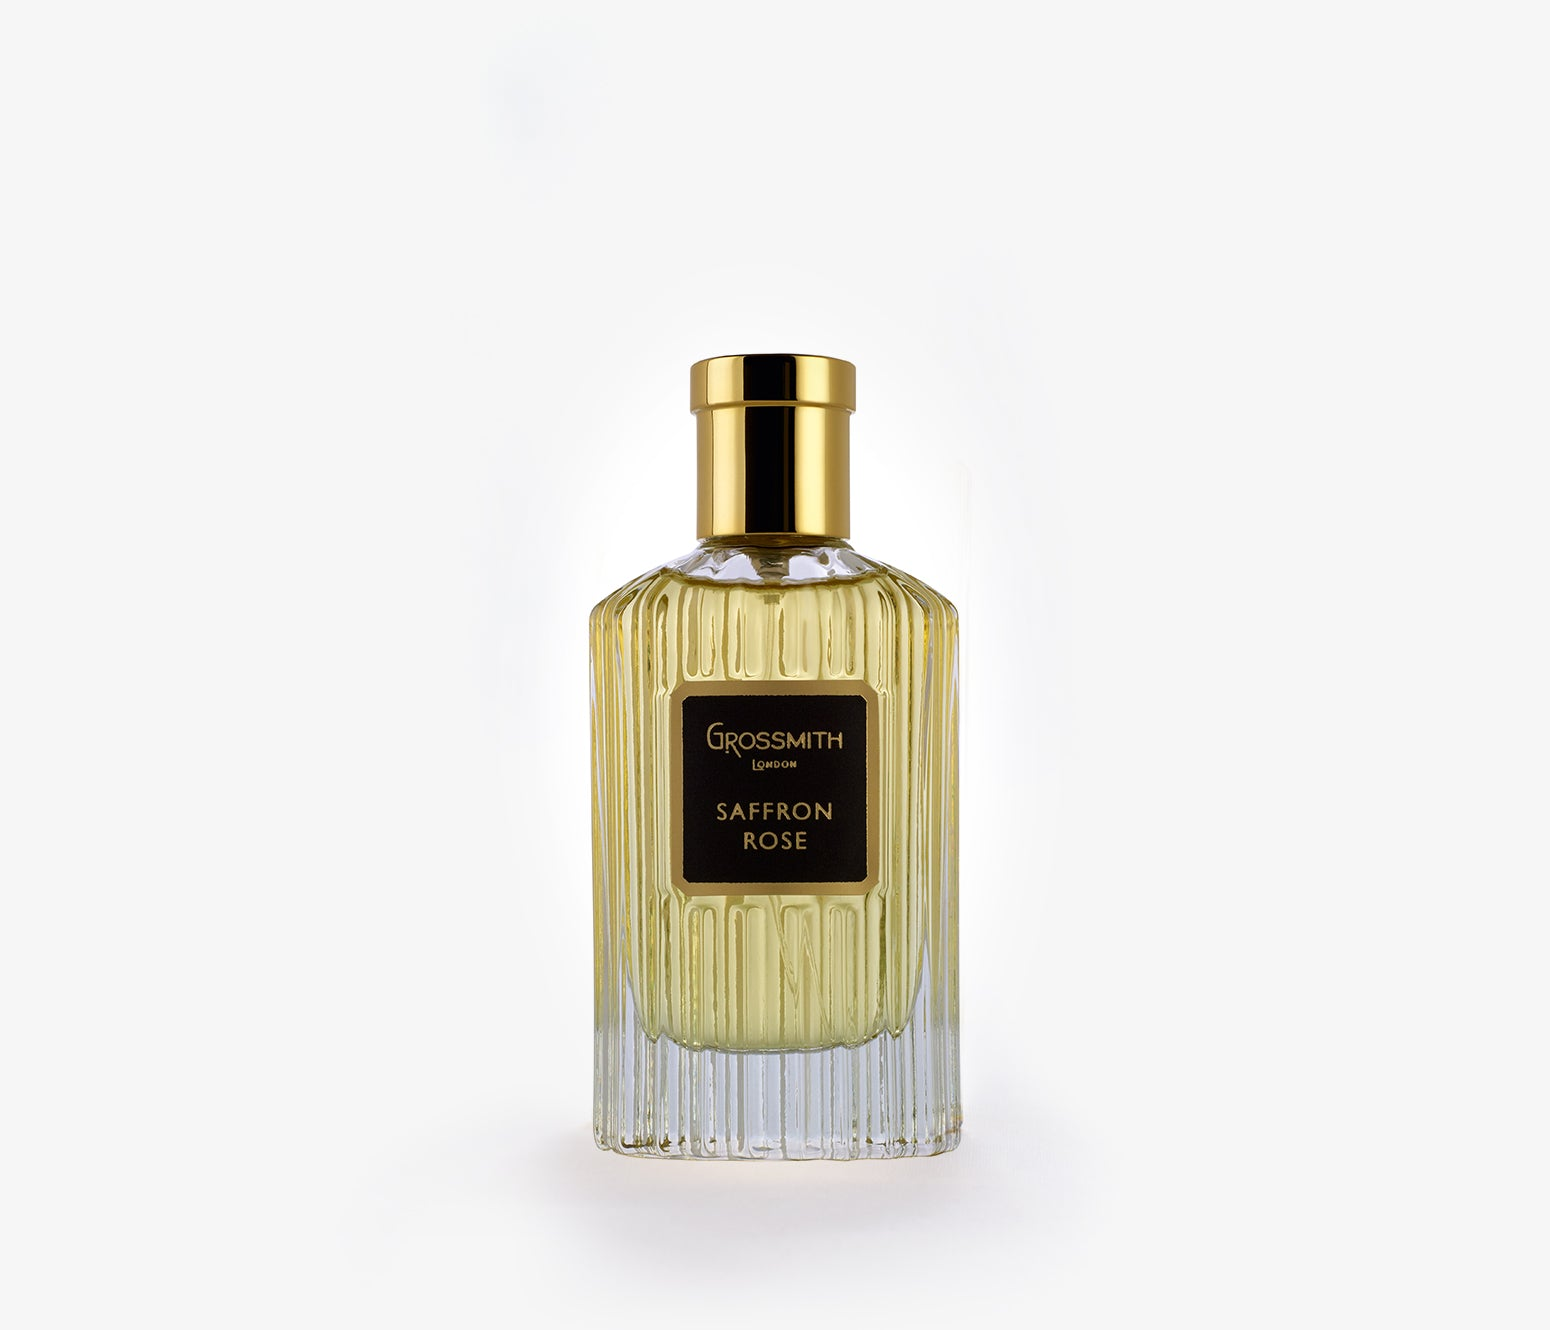 Grossmith London - Saffron Rose - 50ml - CEE1778 - product image - Fragrance - Les Senteurs